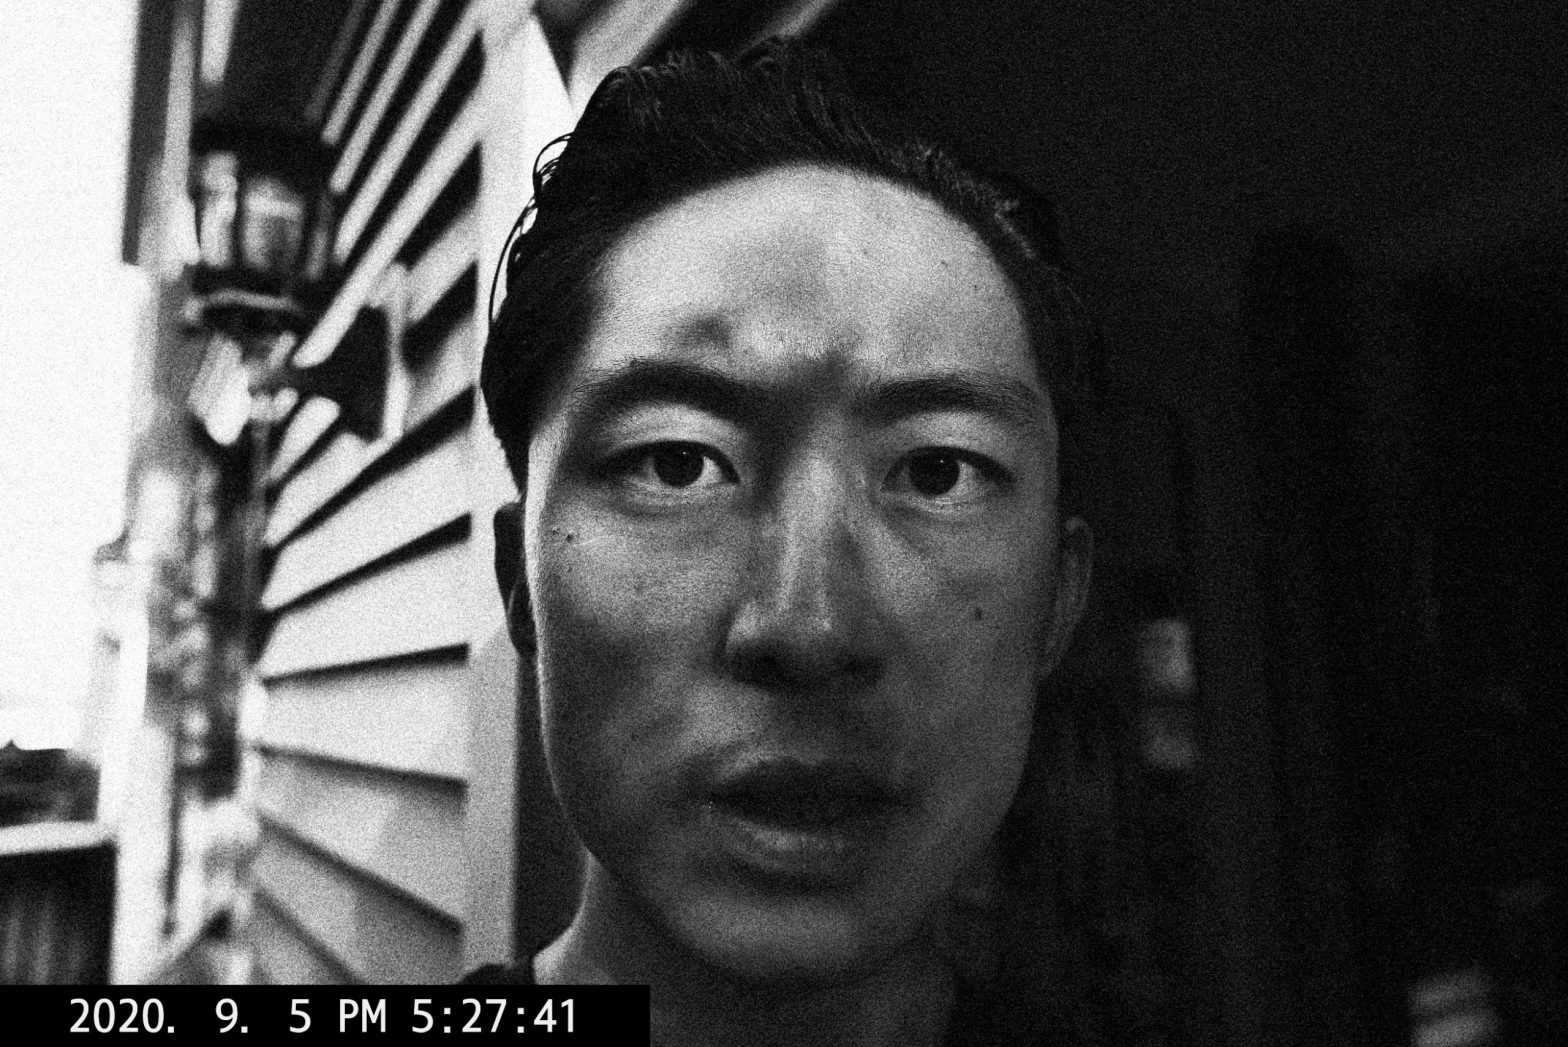 selfie black and white shadow ERIC KIM